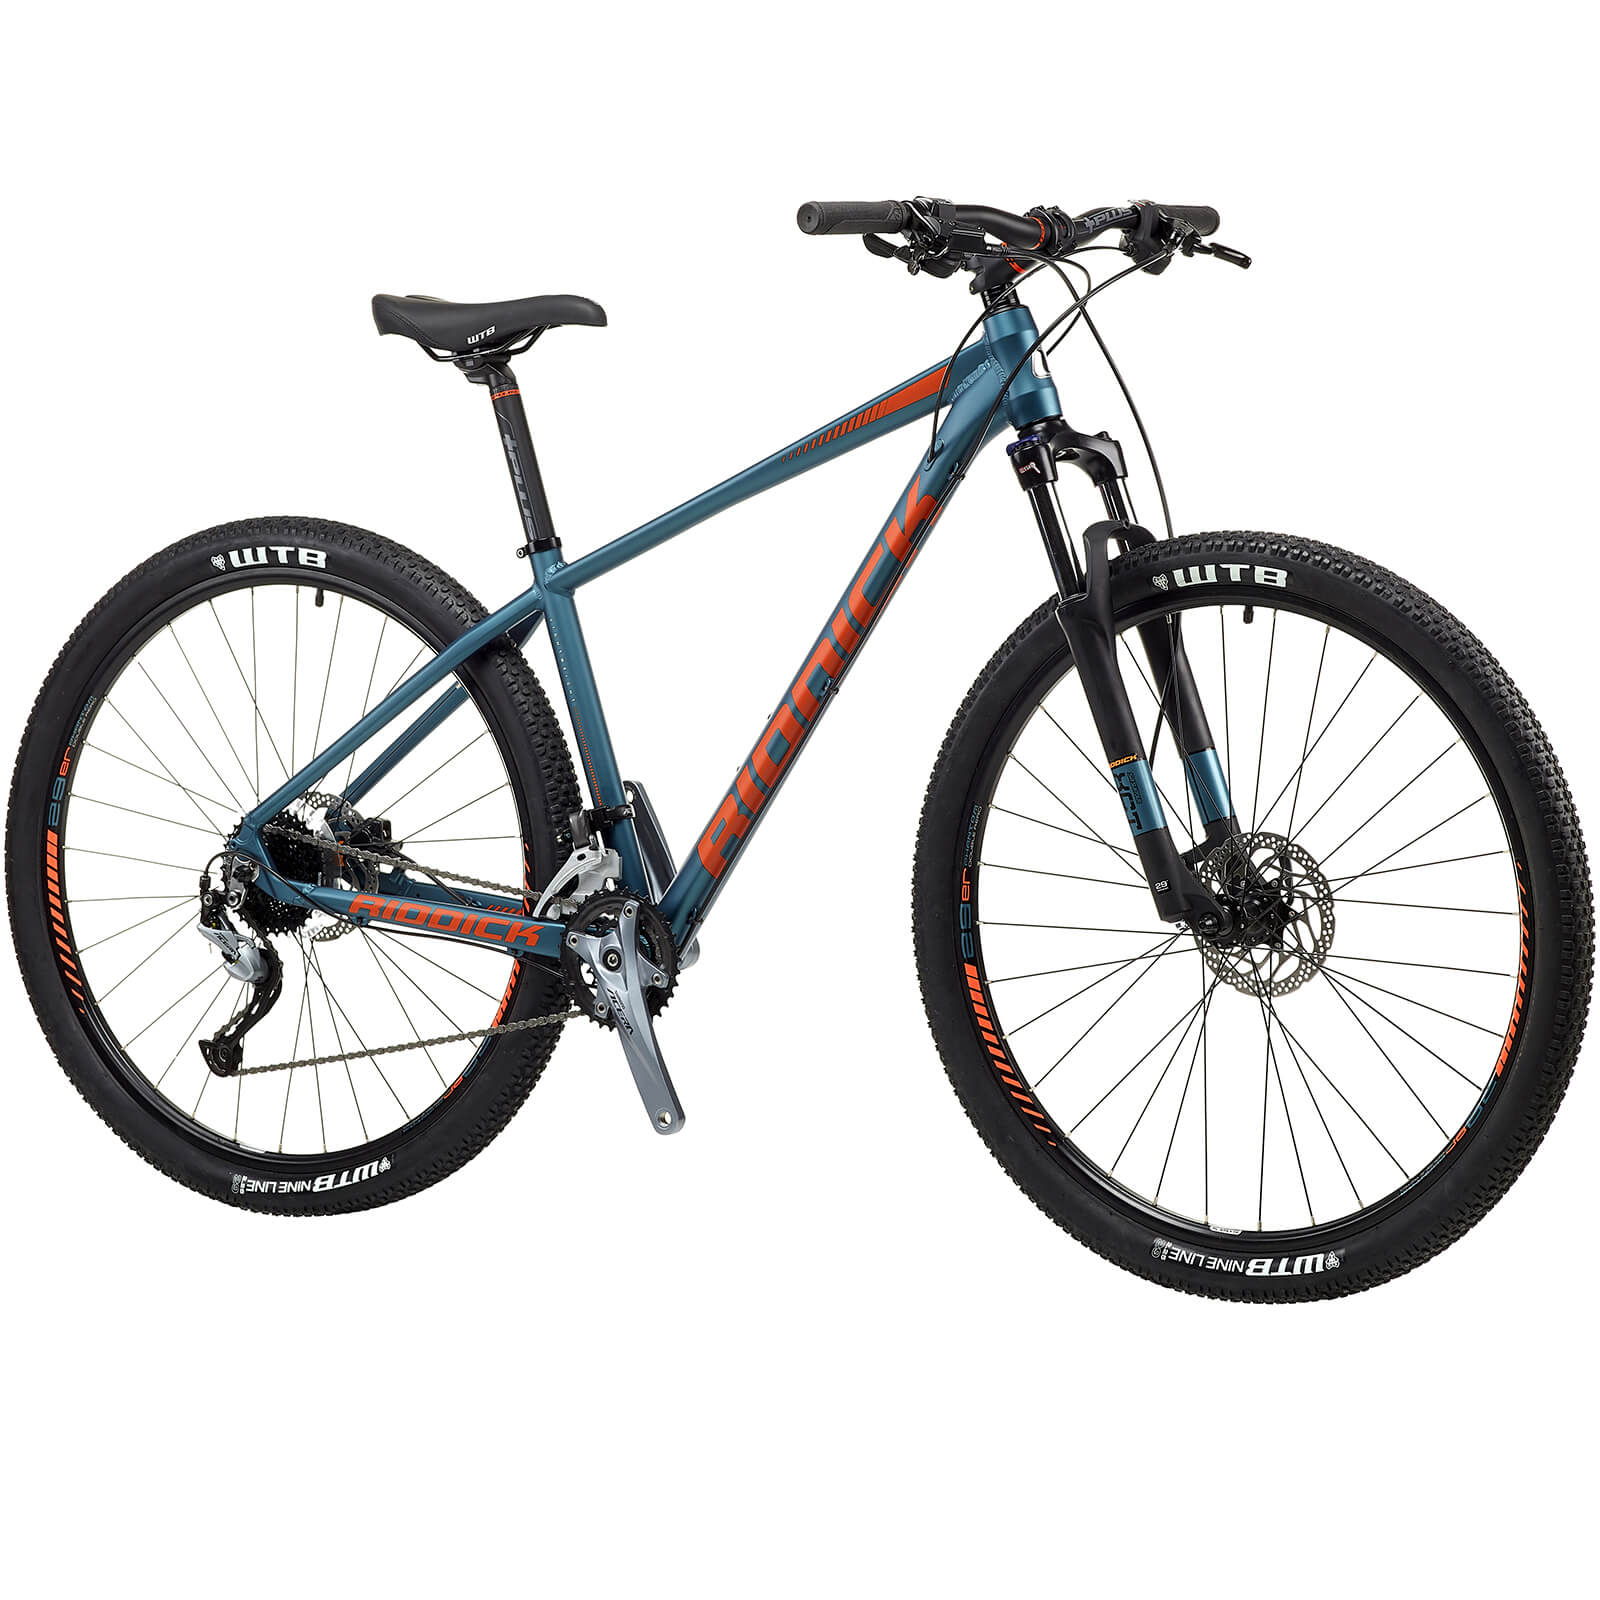 Riddick RD429 Alloy Mountain Bike